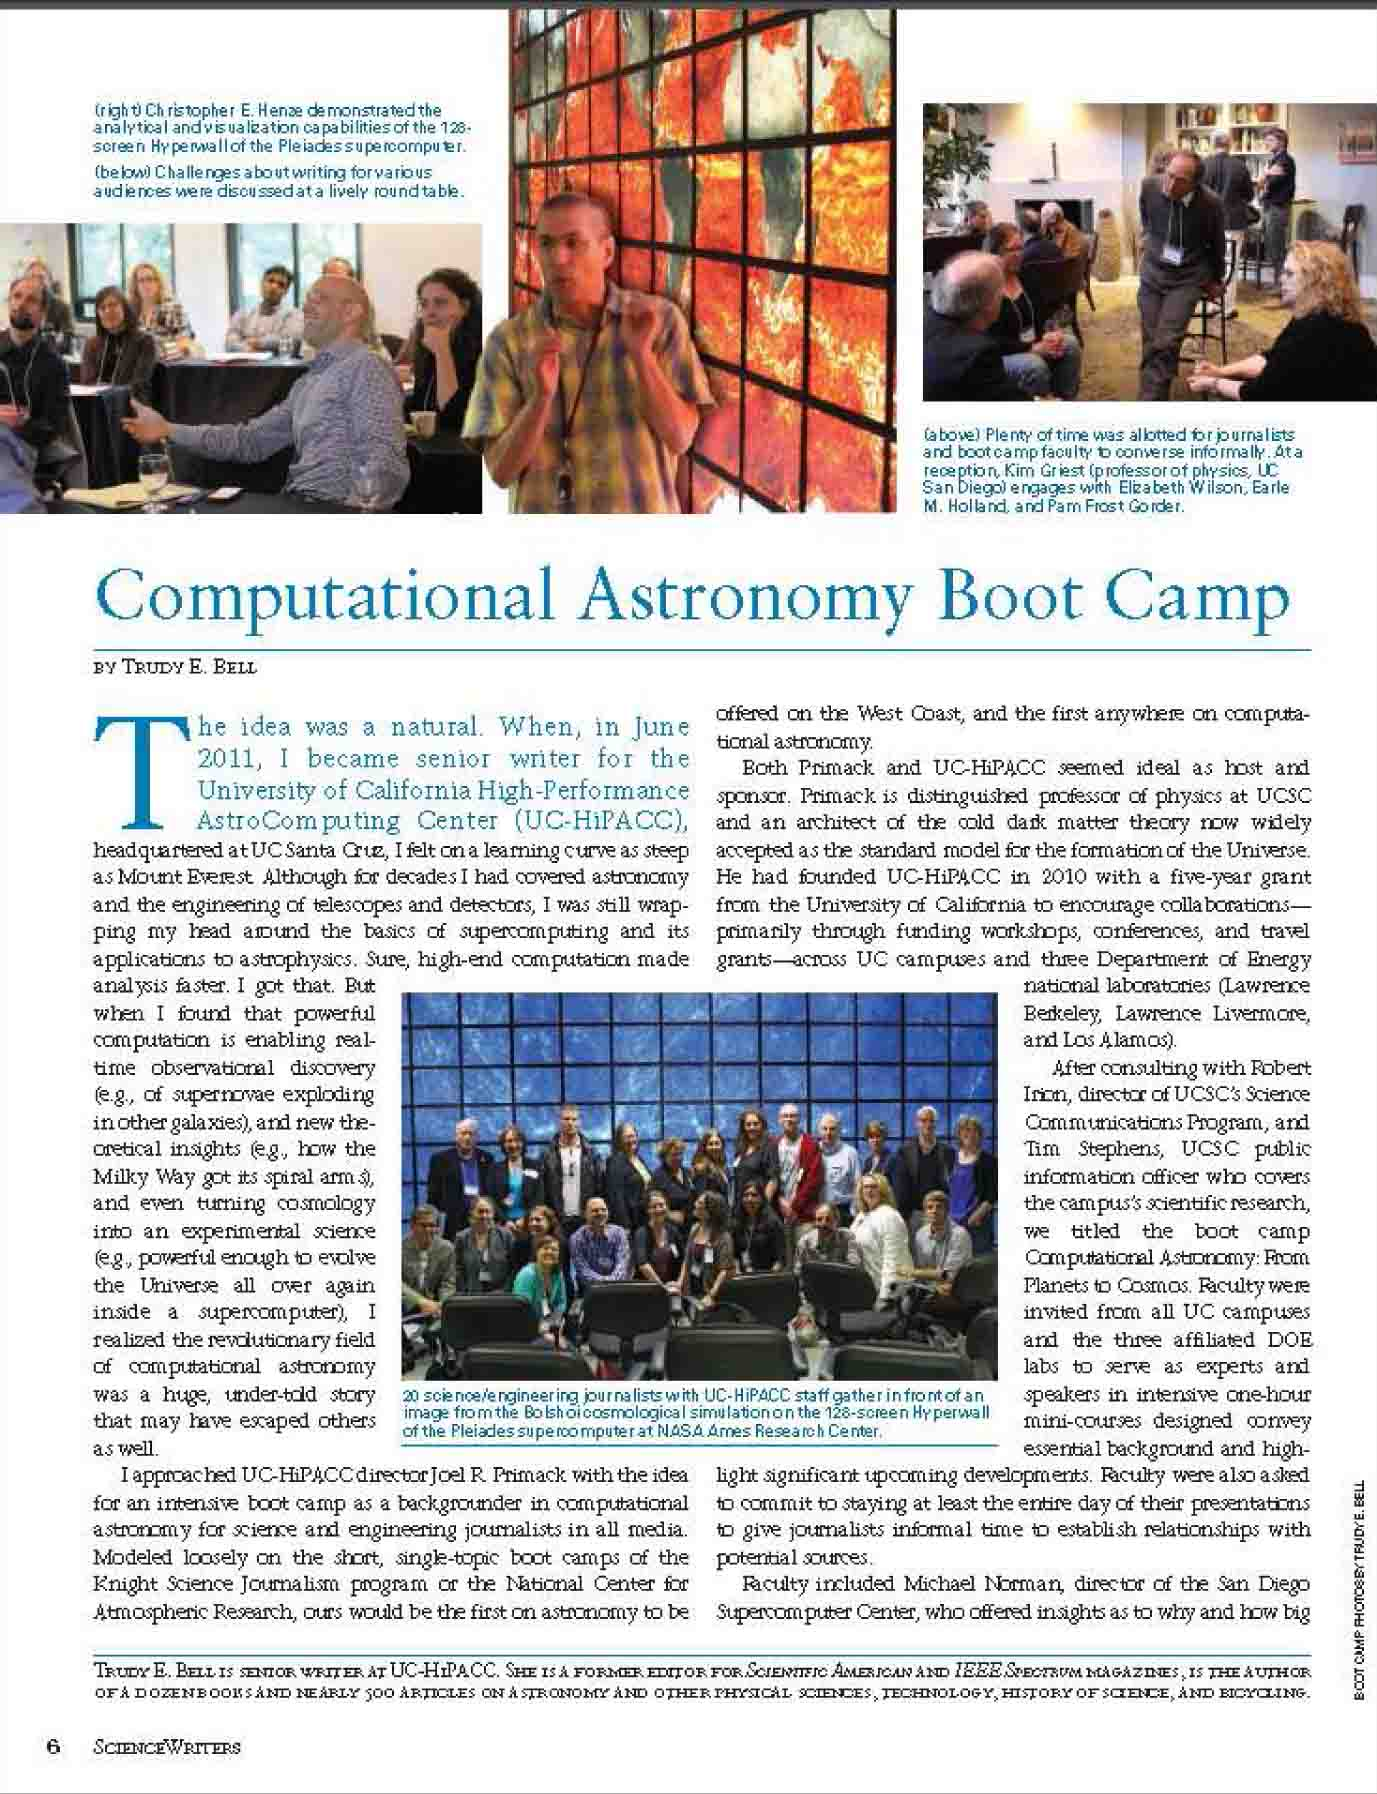 """A Computational Astronomy Boot Camp"" article in ScienceWriters for NASW Winter 2013"